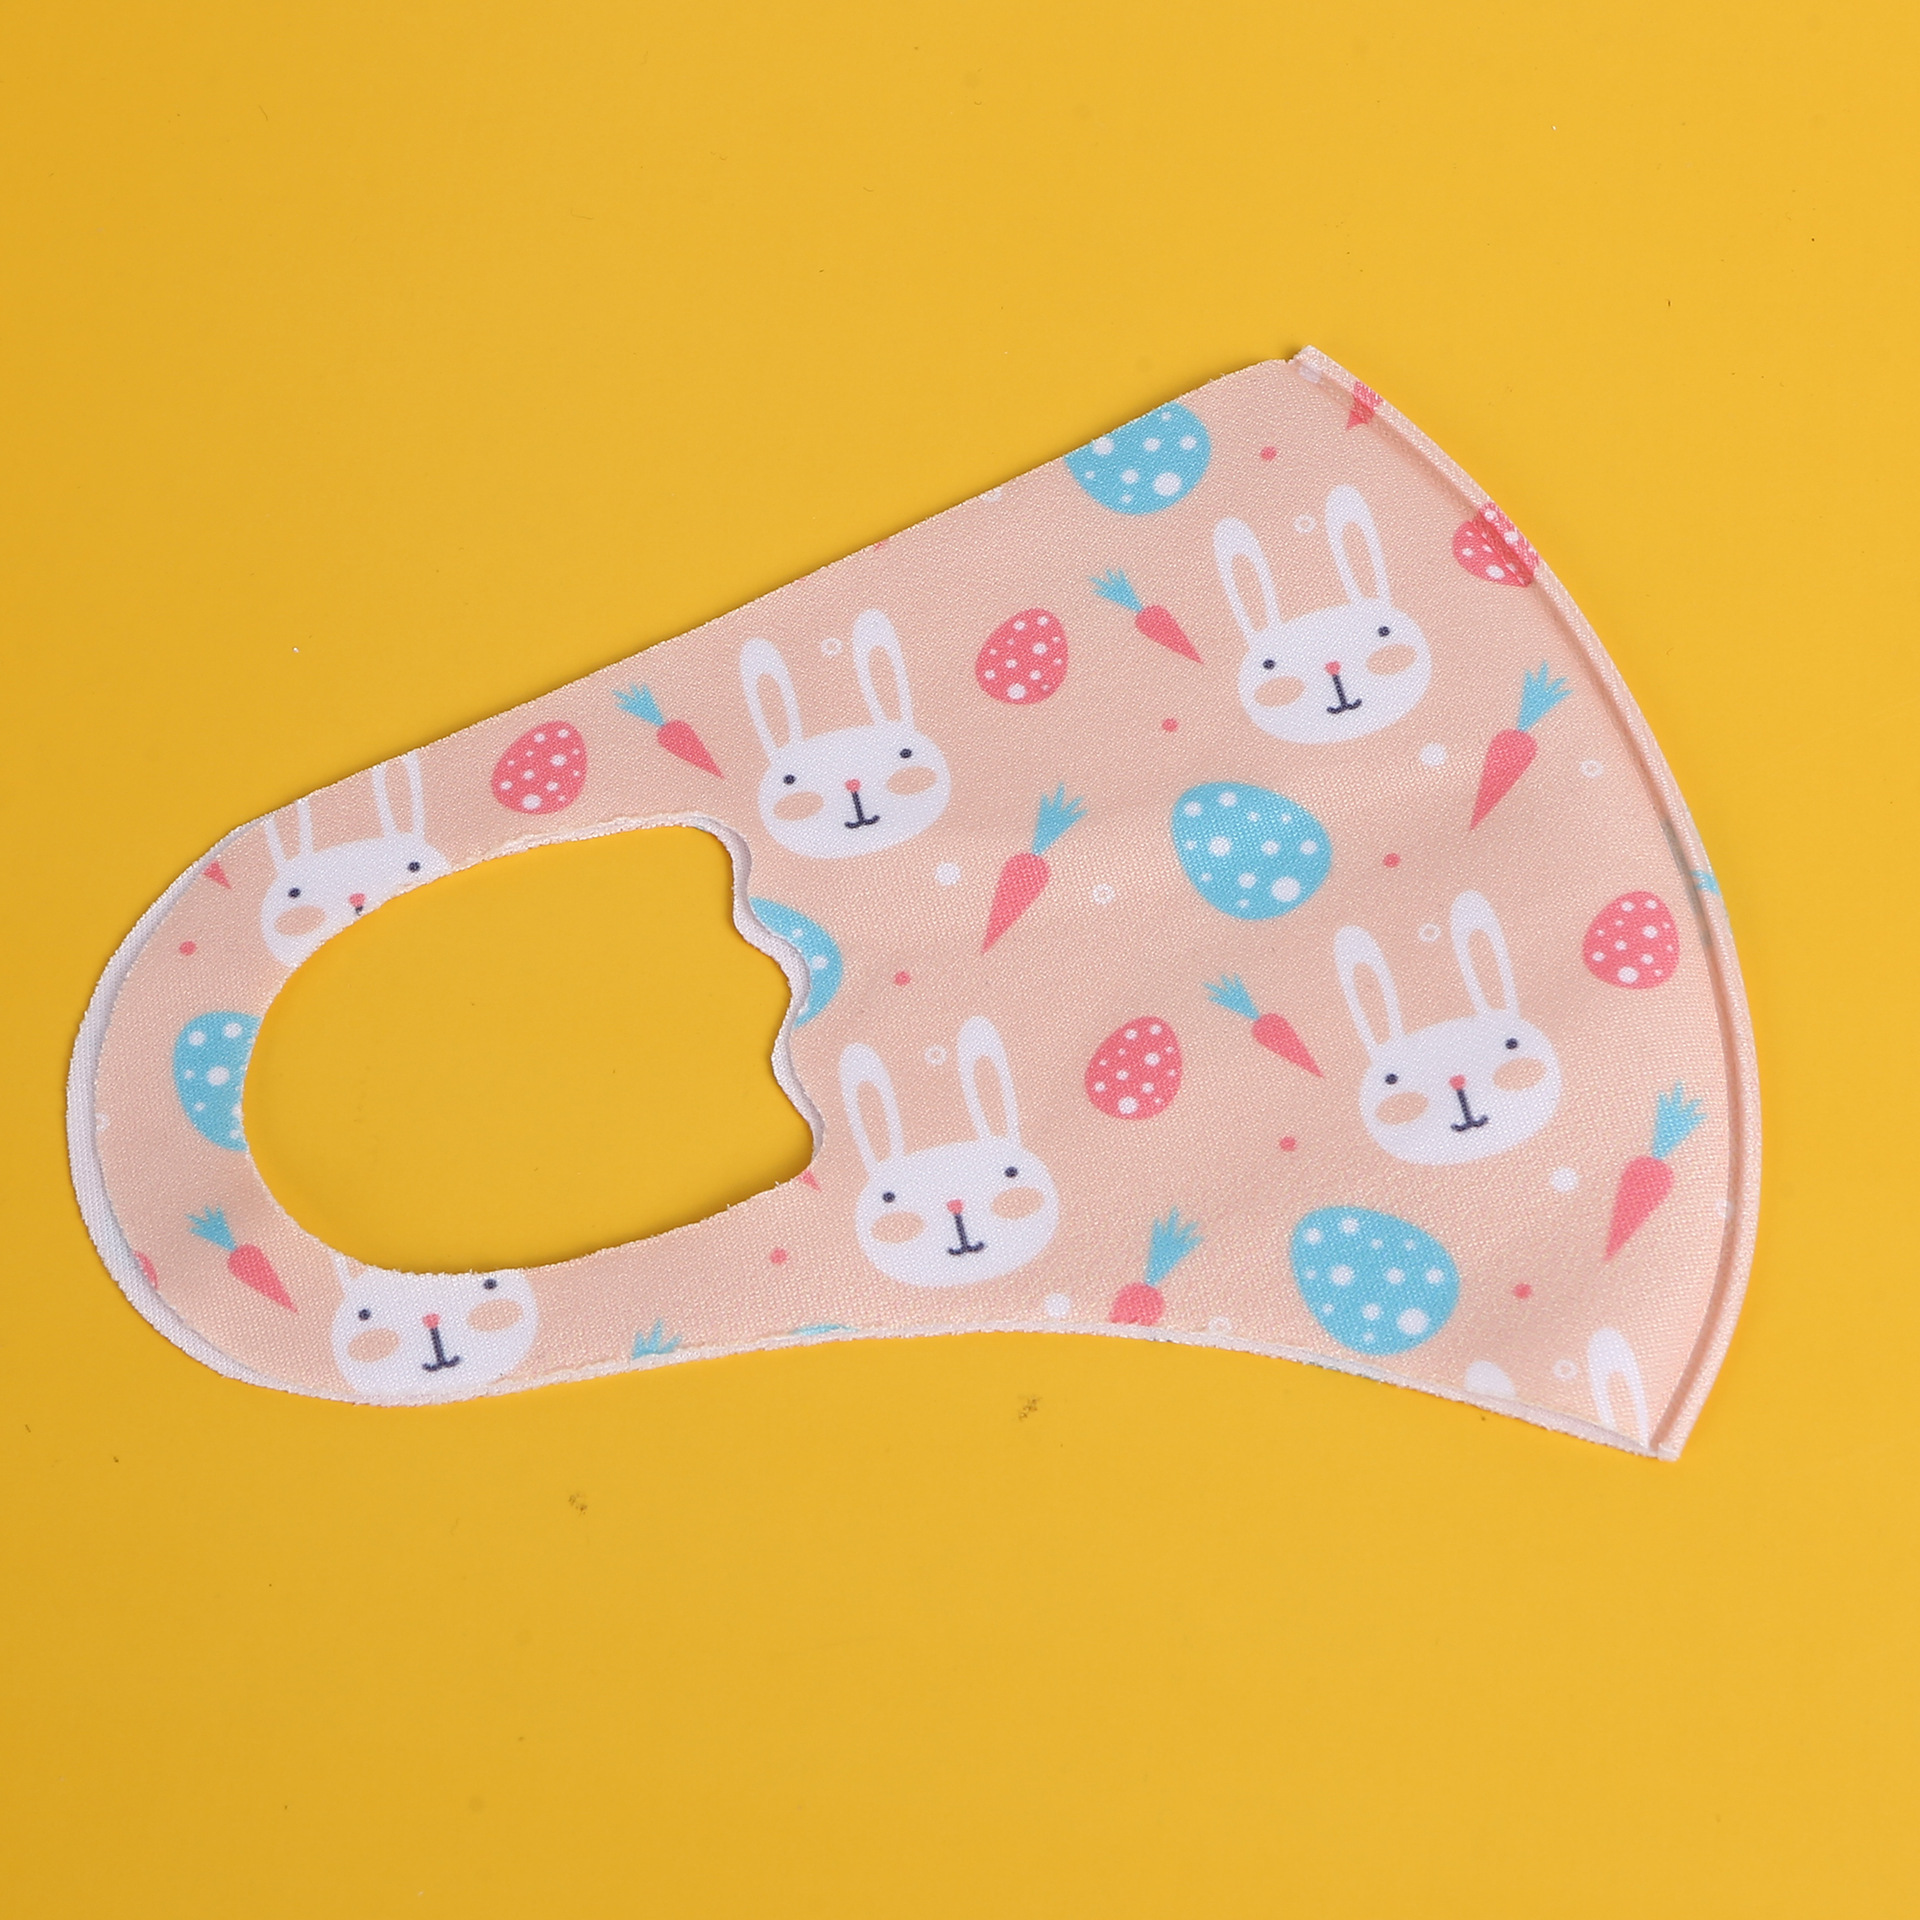 Children kids ice silk protective printed masks dustproof breathable anti-haze repeatable washing customizable shields mouth mask fast ship